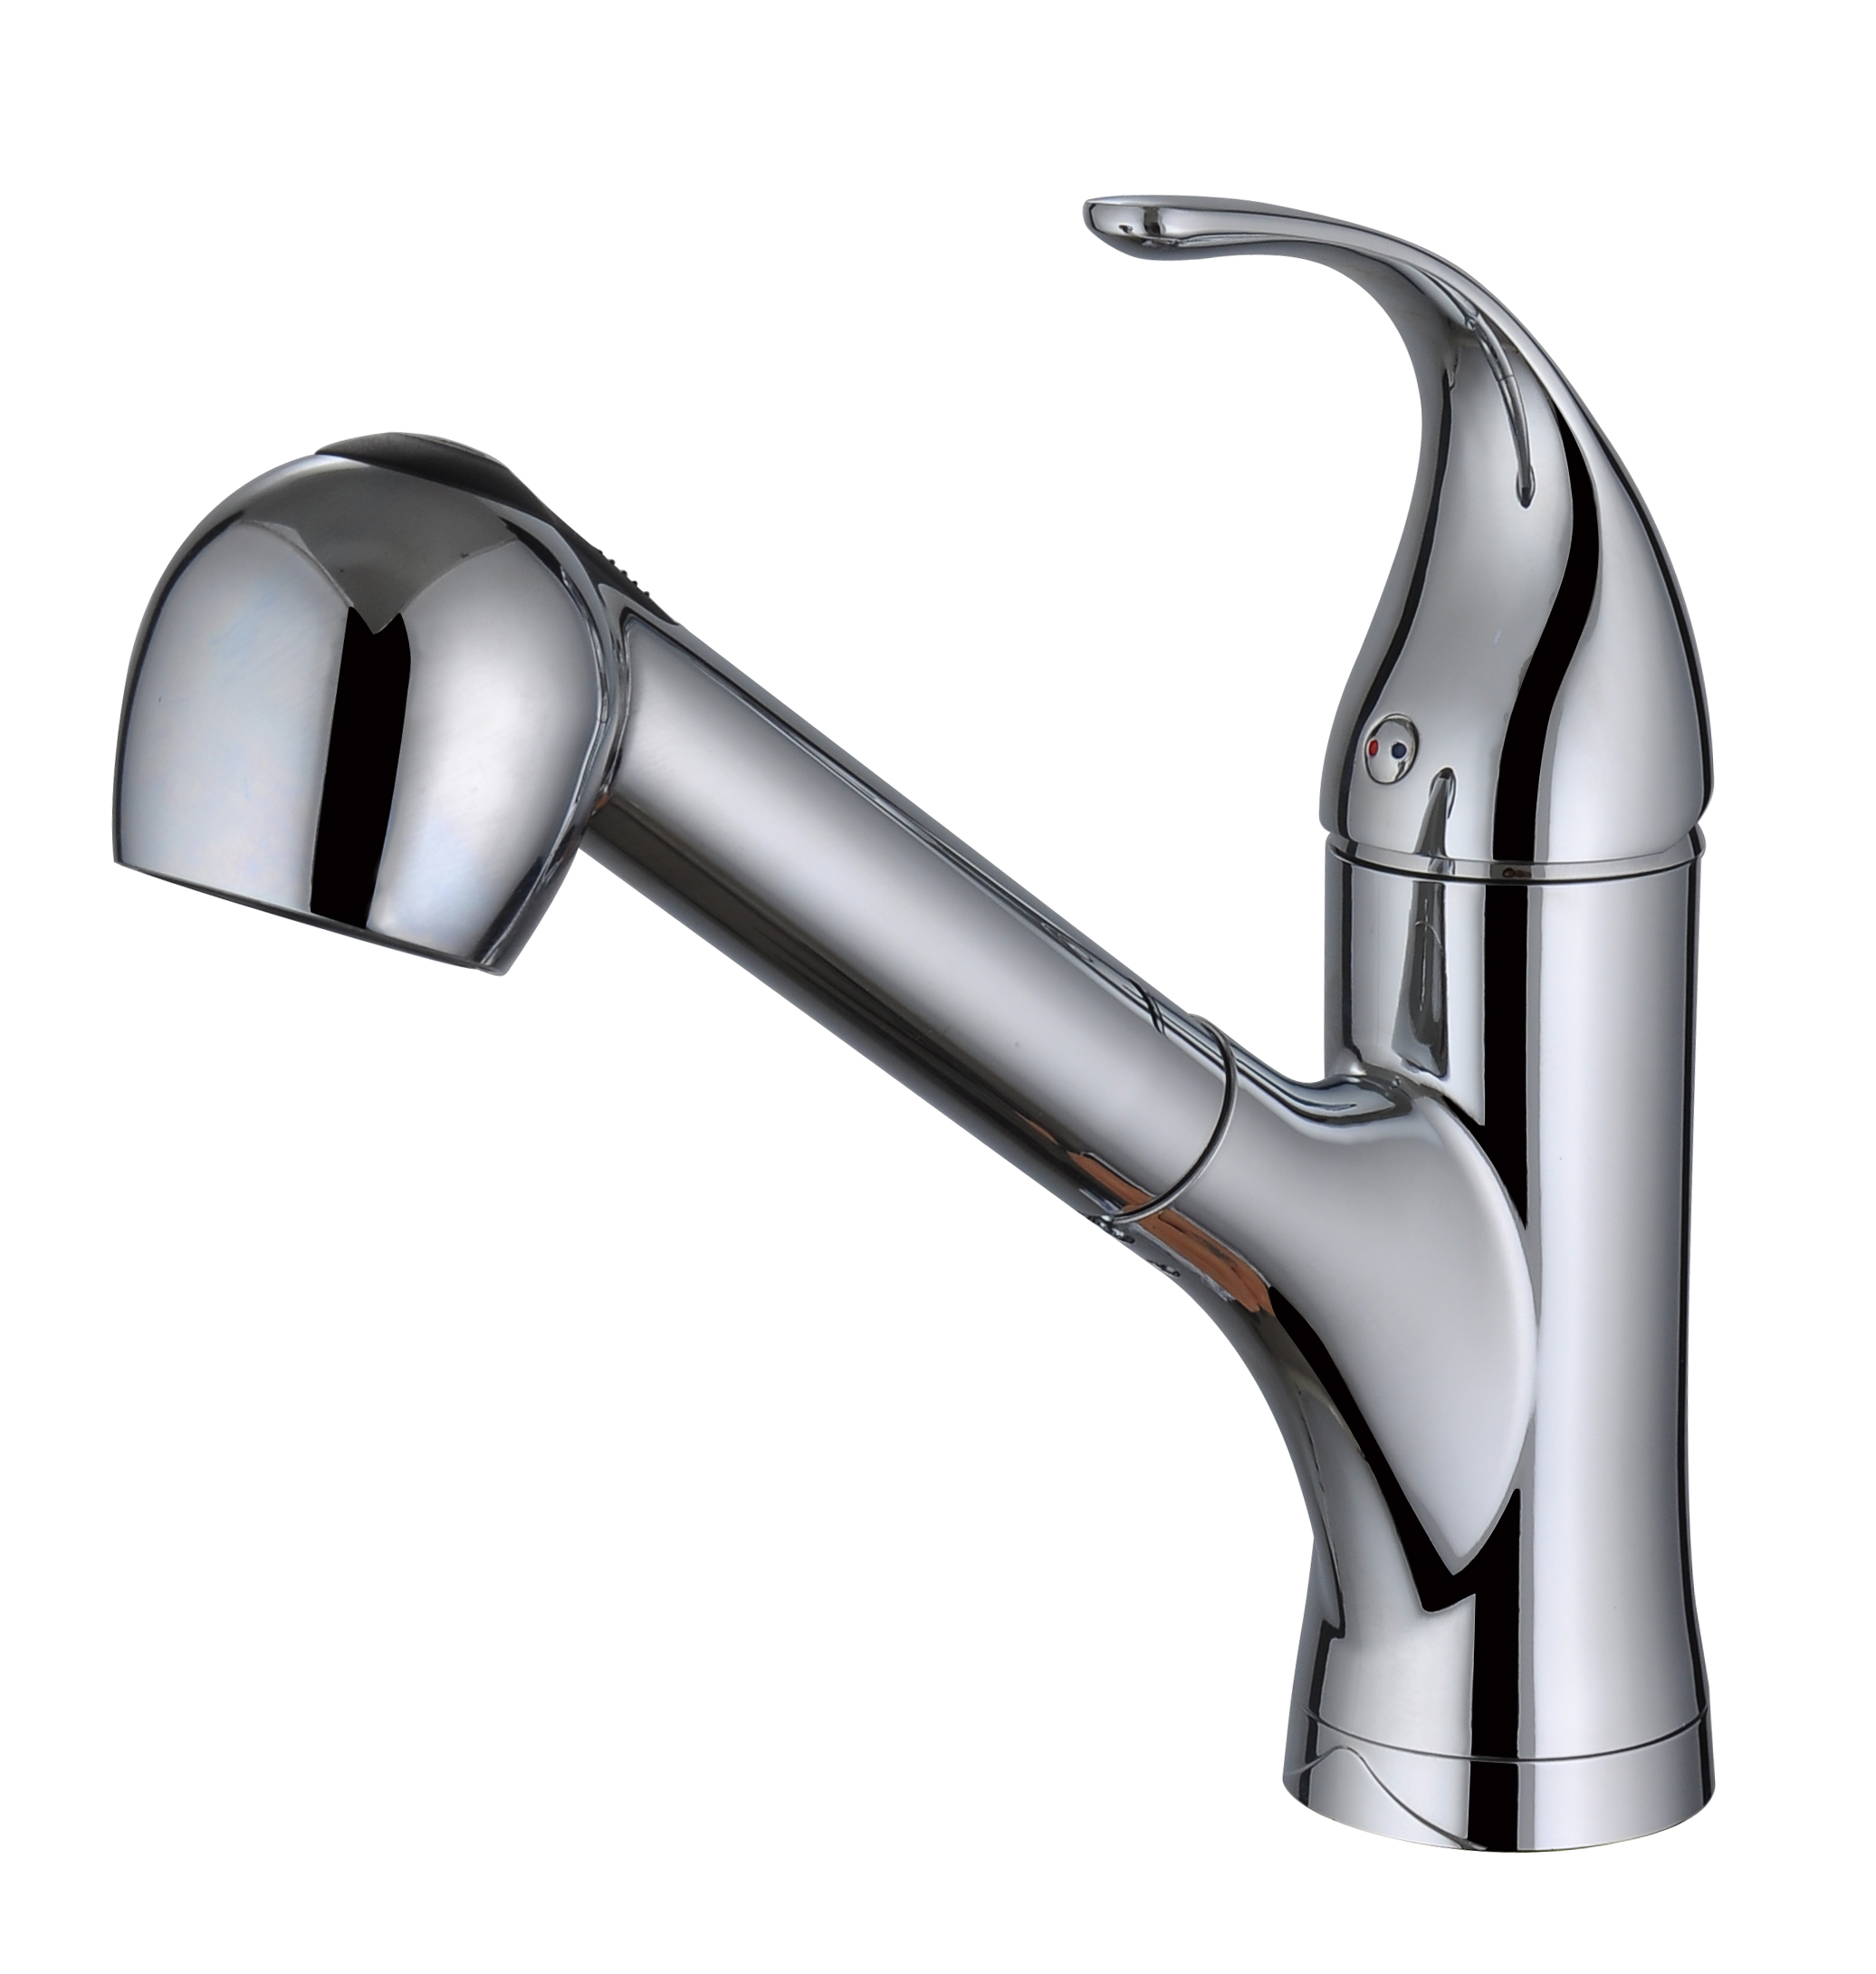 KM 05A, Kitchen Sink Faucet Pull Out 2 Functions Spray Mixer Tap (Lead  Free) U2013 Welcome To Bidet4me